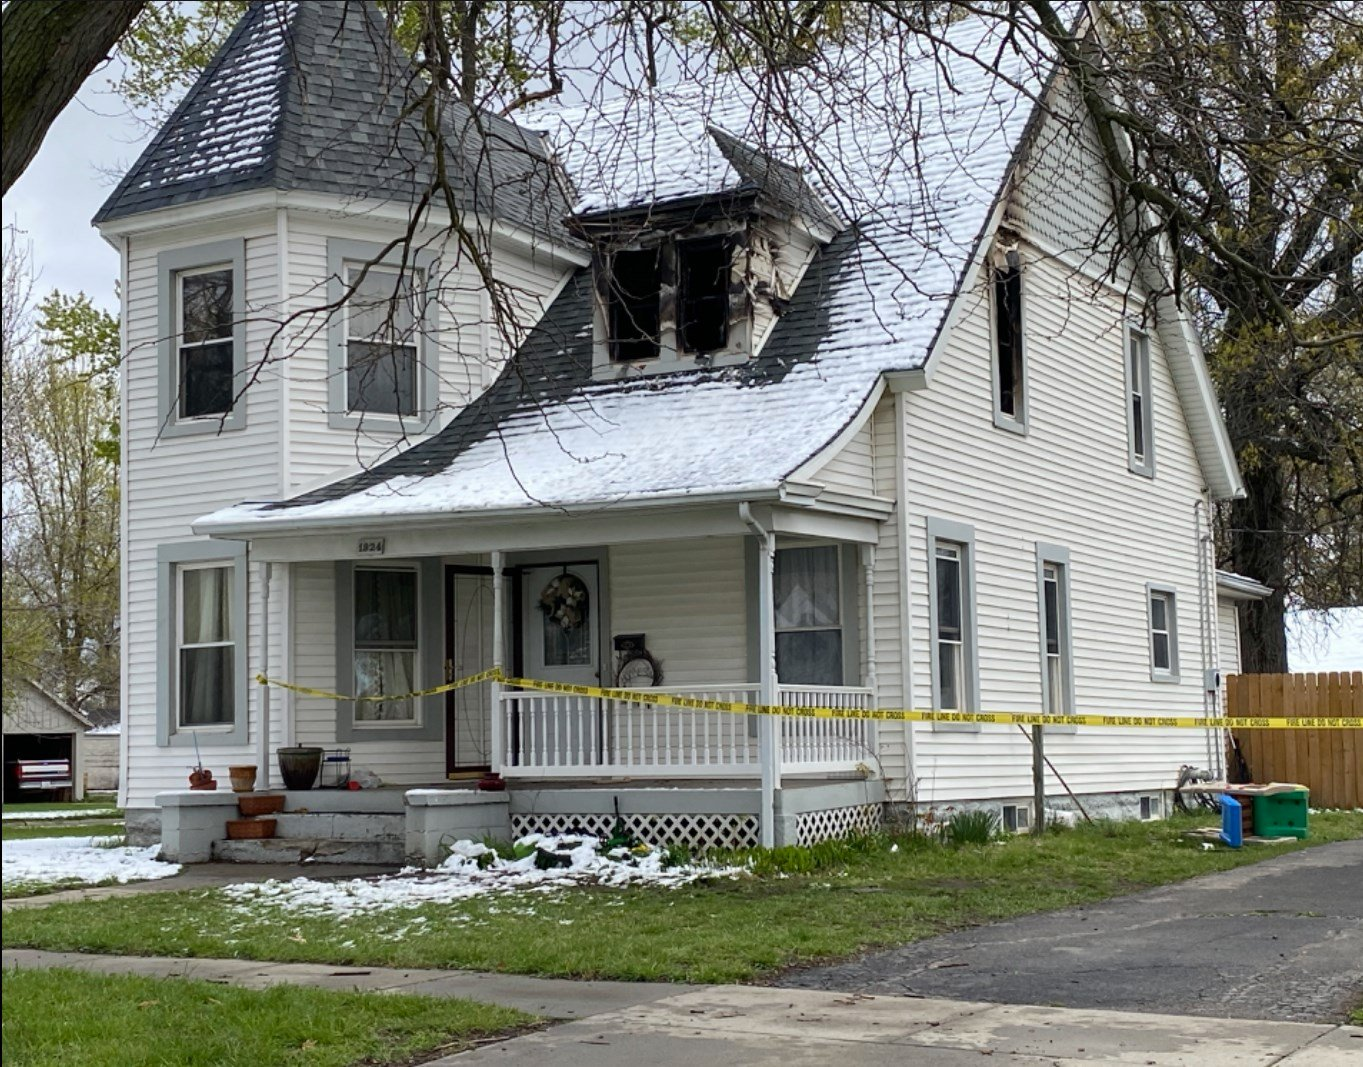 Overnight house fire at Falls City